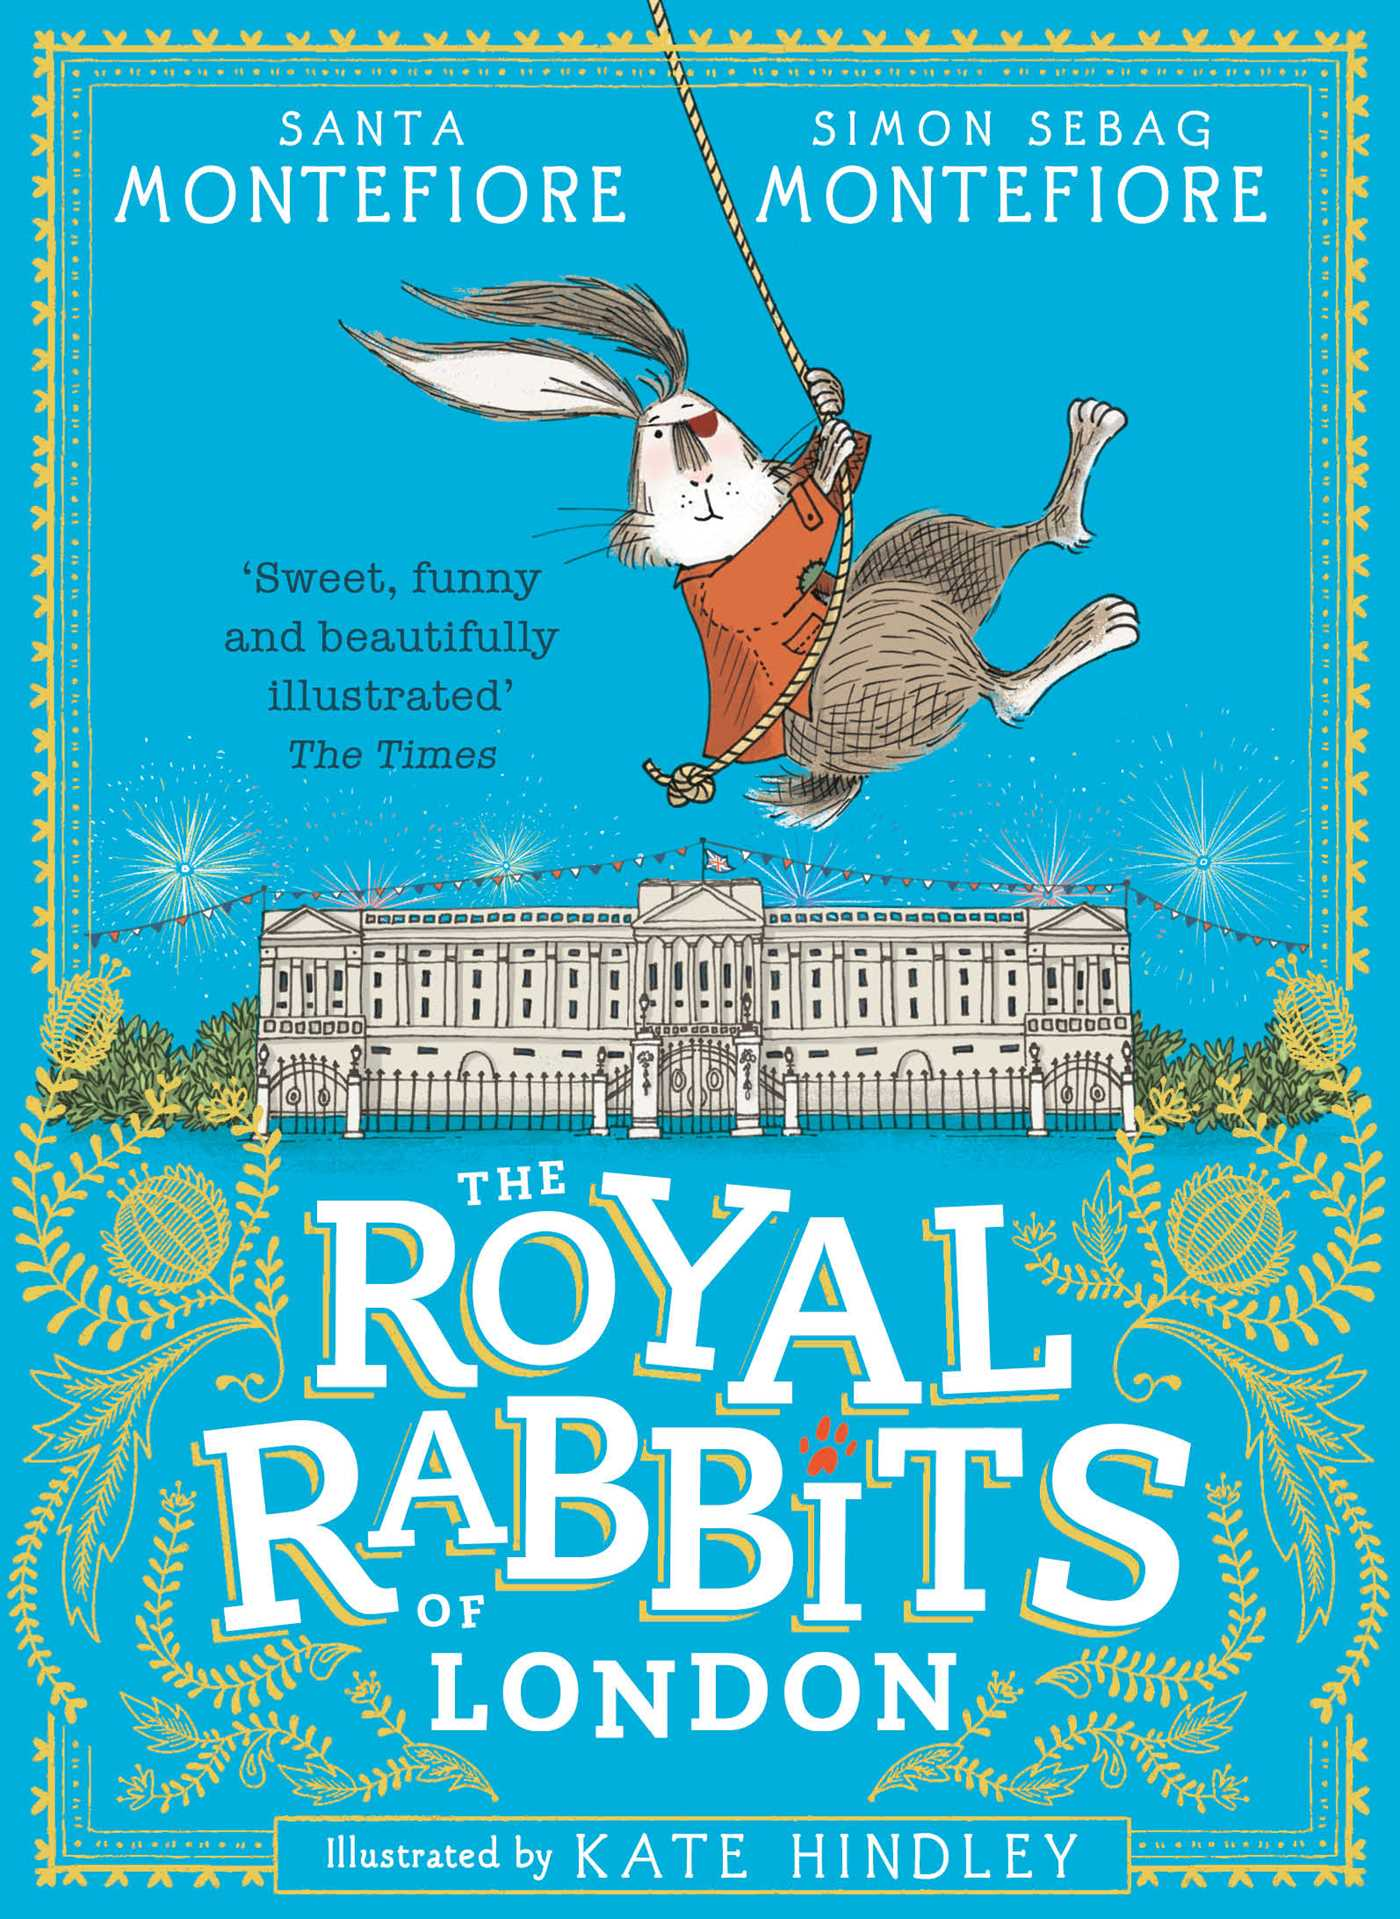 The royal rabbits of london 9781471157882 hr